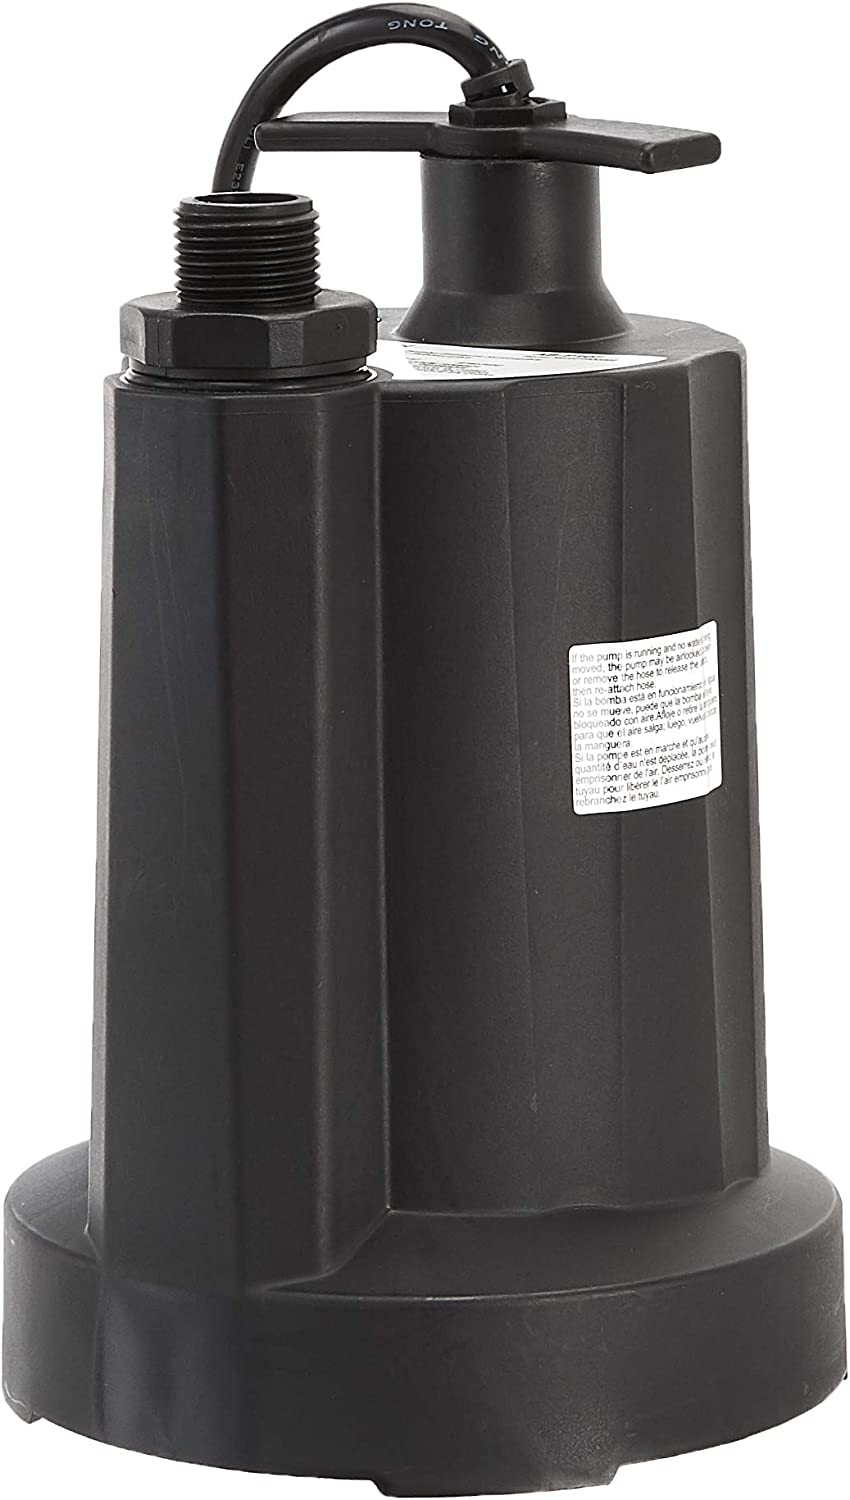 AmazonCommercial 1/3 HP Thermoplastic Submersible Utility Pump, Black